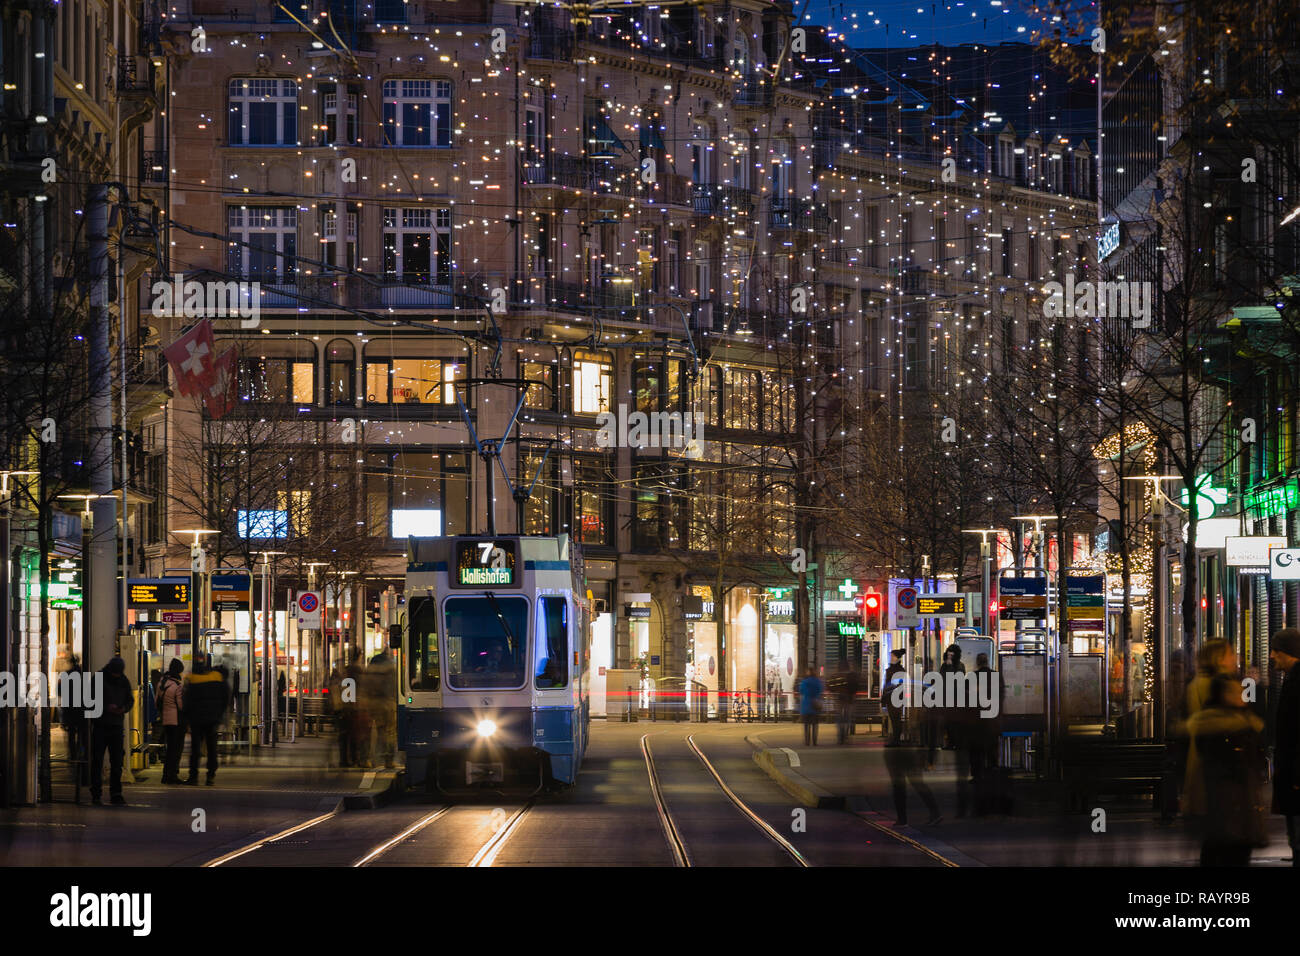 Christmas lights at Bahnhofstrasse, Zurich, Switzerland - Stock Image